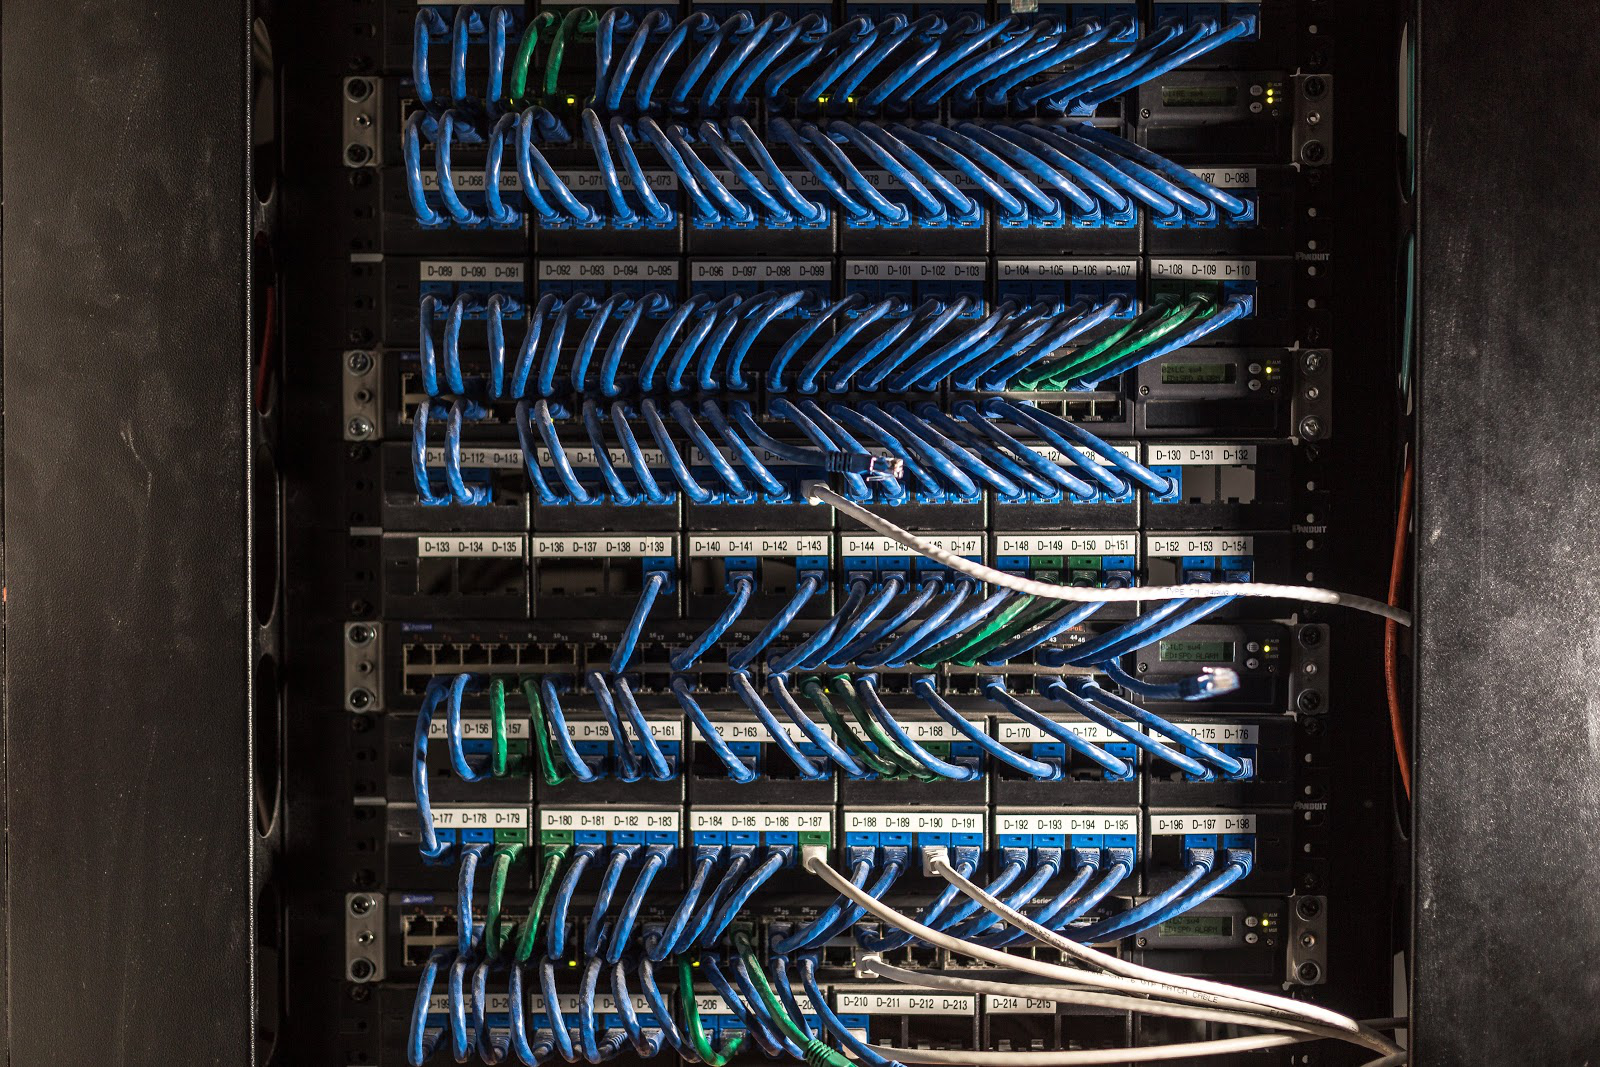 rack-mounted-patch-panel-cables